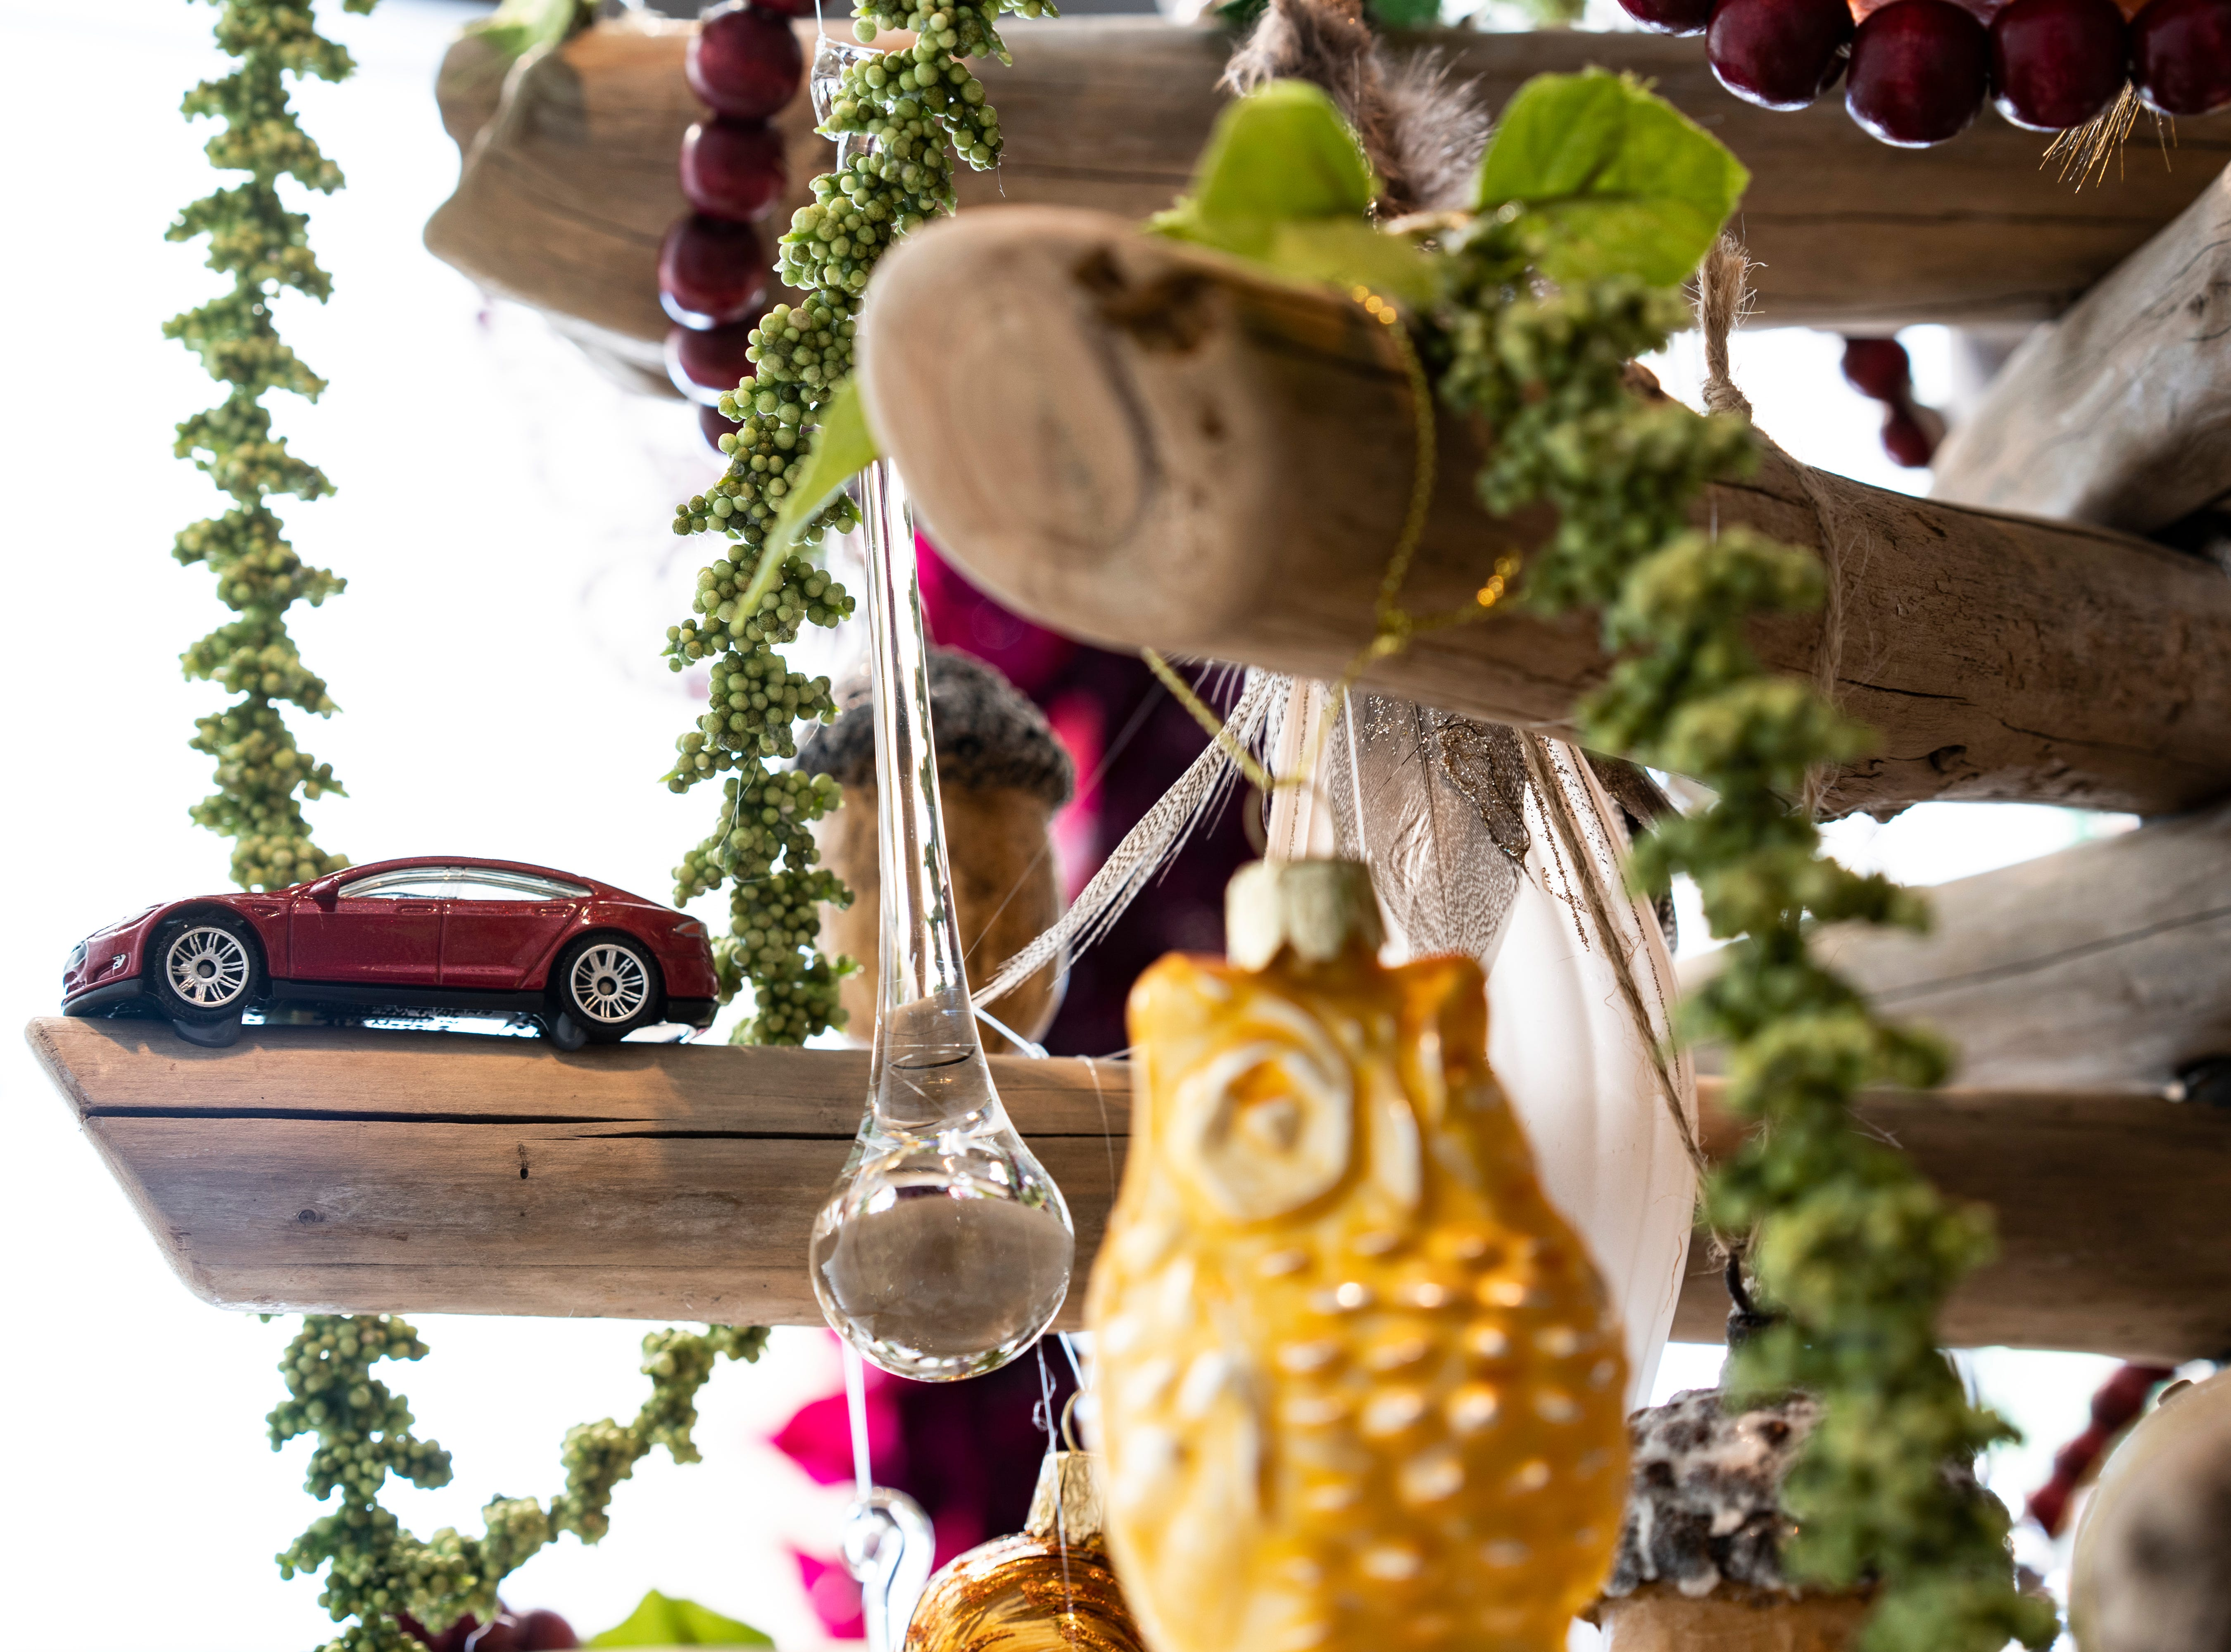 Tesla donated a driftwood Christmas tree decorated with miniature Tesla cars and a variety of ornaments depicting wilderness to raise funds for the Conservancy of Southwest Florida.  Waterside Shops is hosting A Season of Giving, in which bids are placed on 10 elegantly decorated Christmas trees displayed at stores in the center, each in support of a nonprofit in the Naples area. The bidding and display close on Thursday, Dec. 6, 2018.